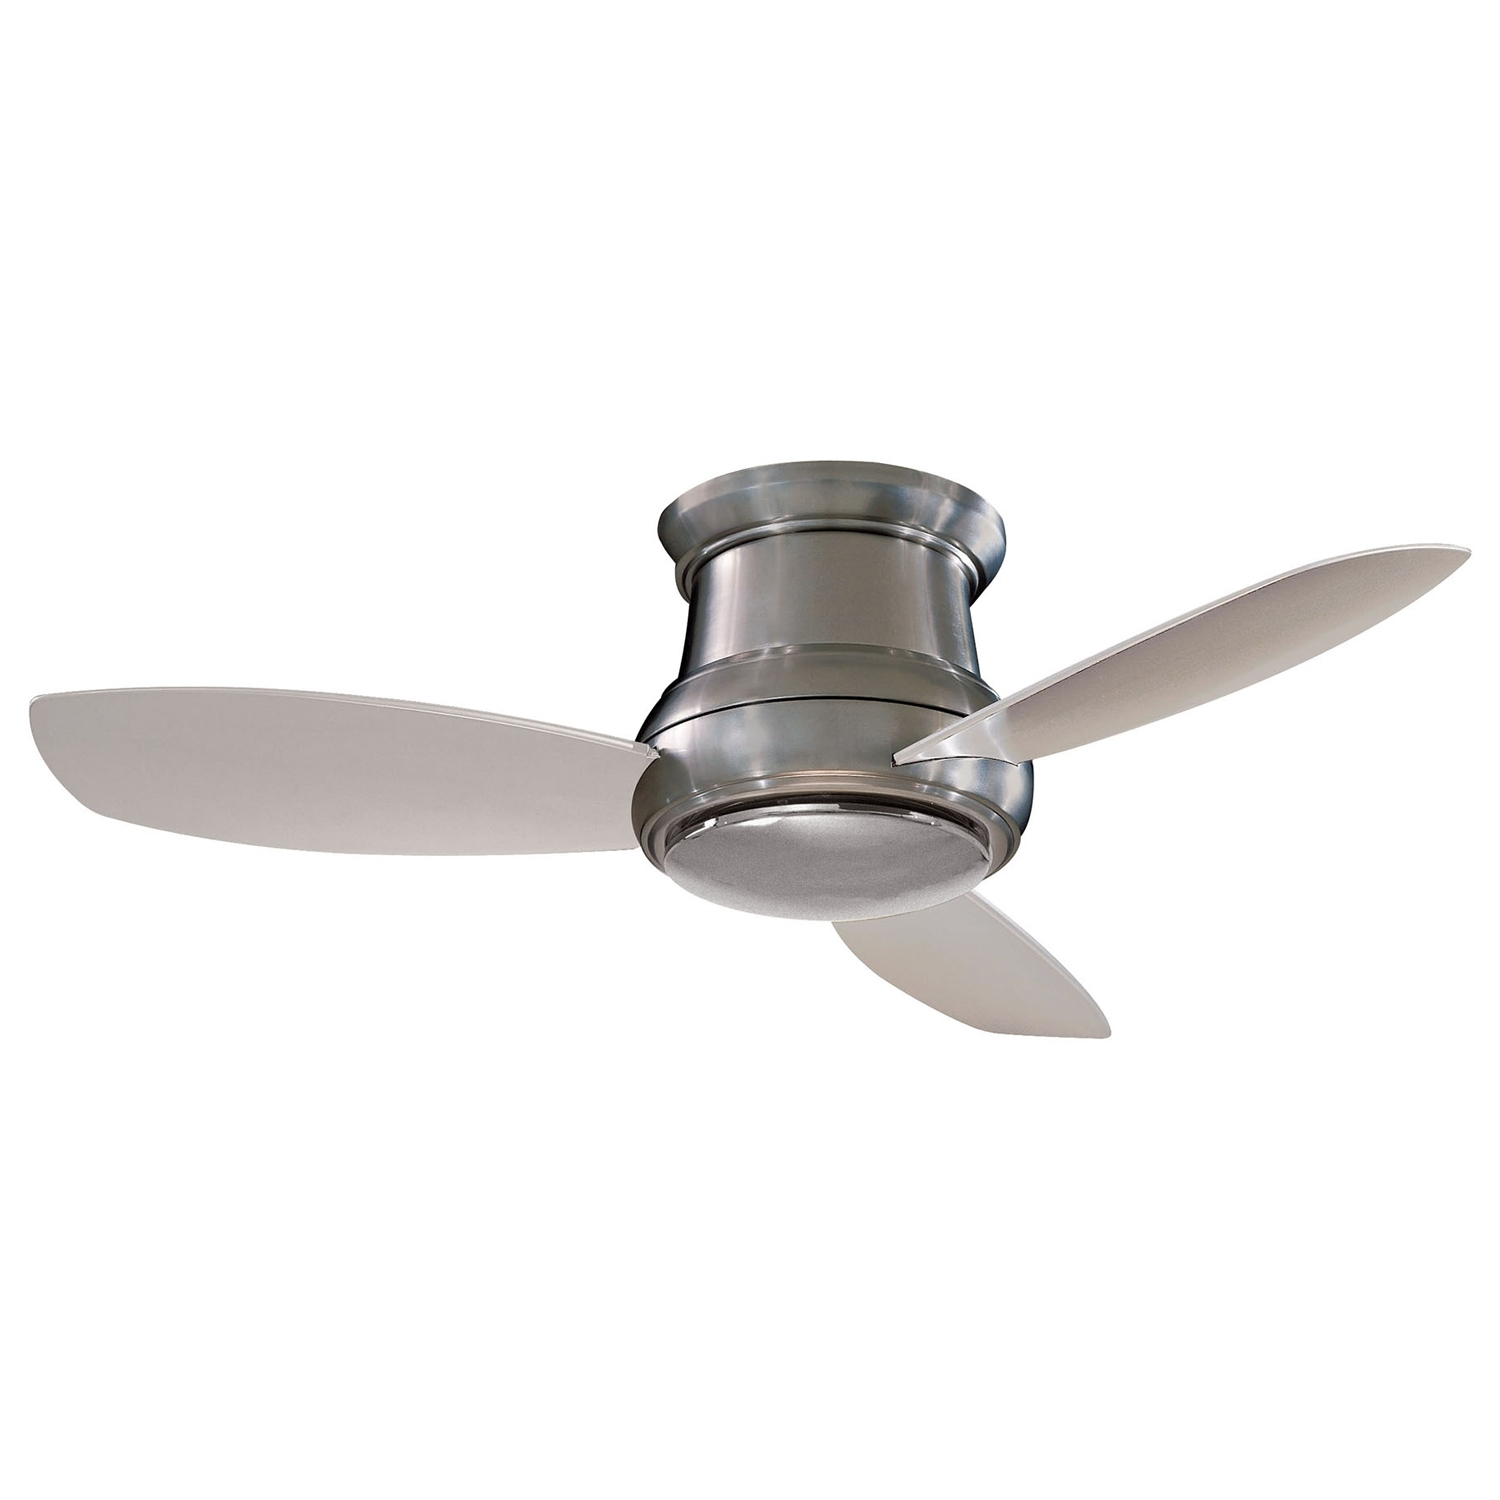 Most Popular Small Ceilin Amazing 36 Ceiling Fans With Lights Flush Mount Regarding 36 Inch Outdoor Ceiling Fans With Light Flush Mount (View 3 of 20)